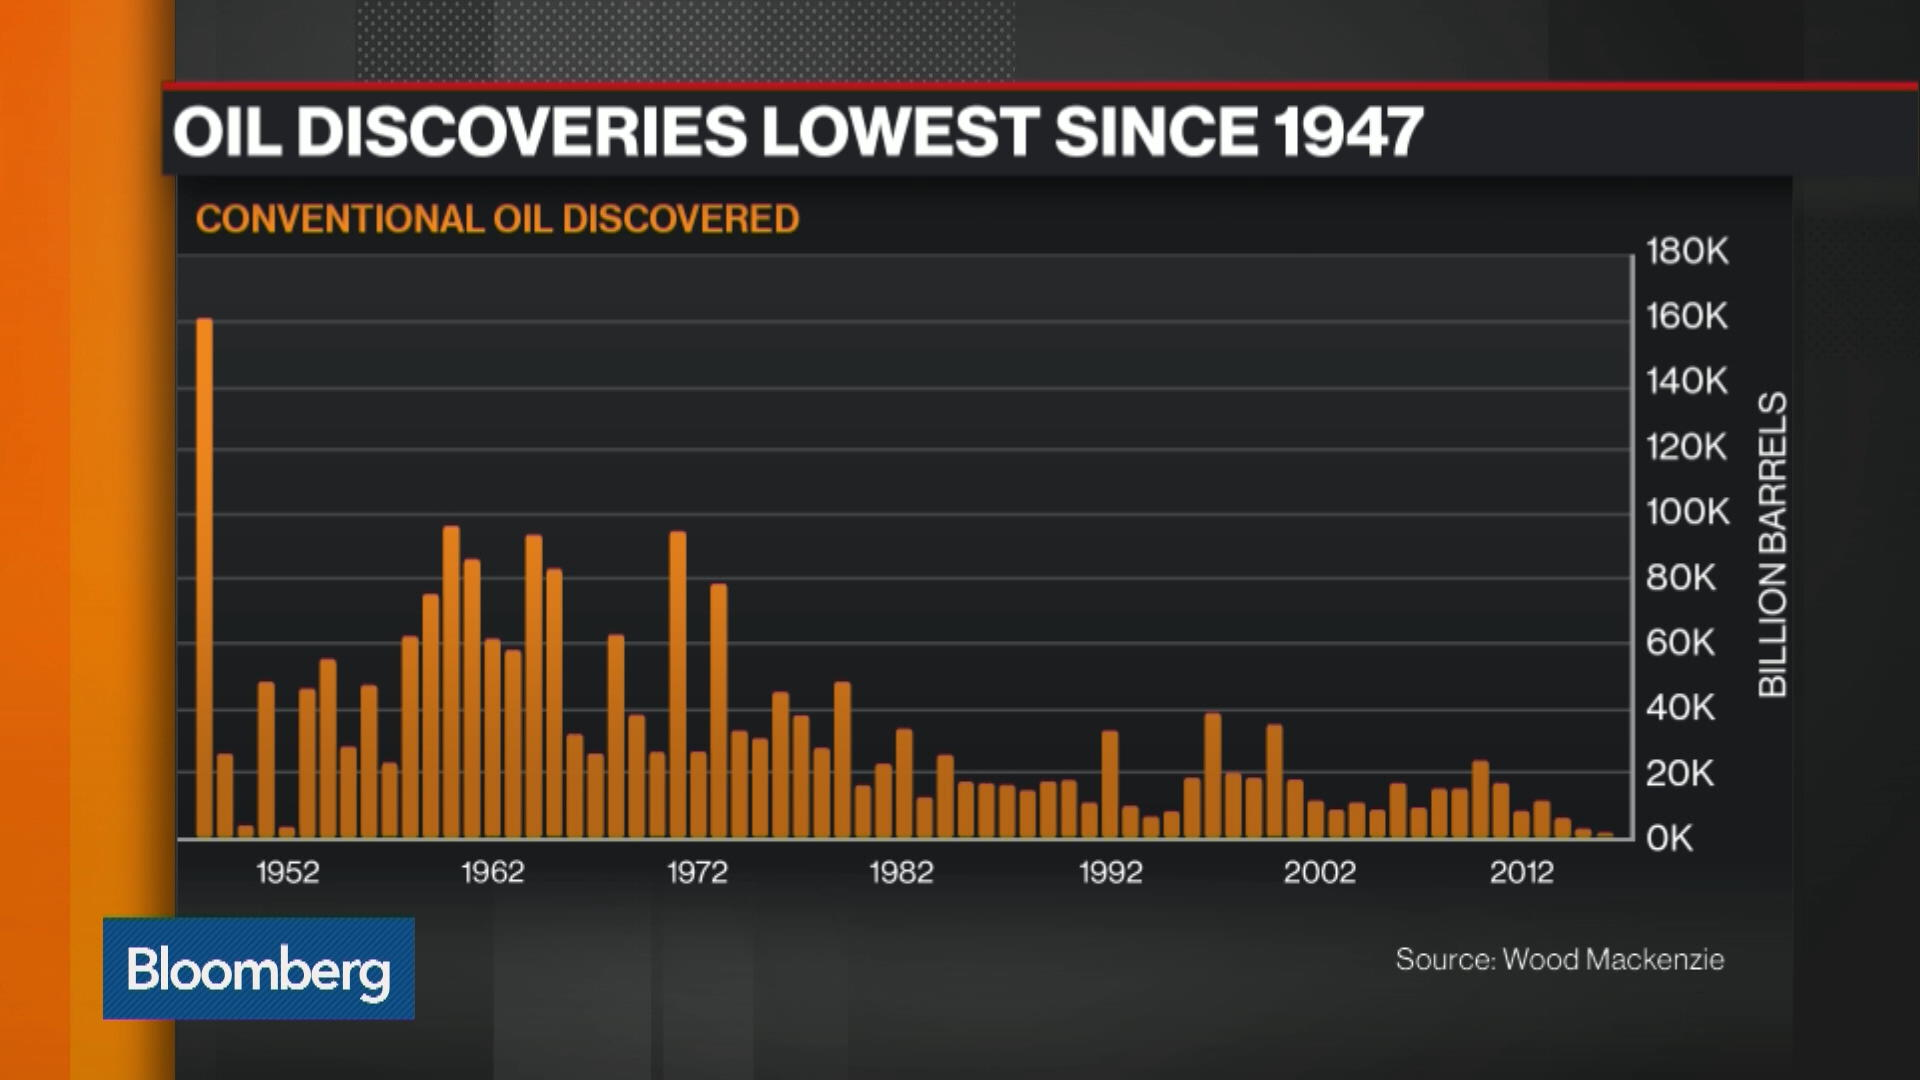 Oil Discoveries Lowest Since 1947